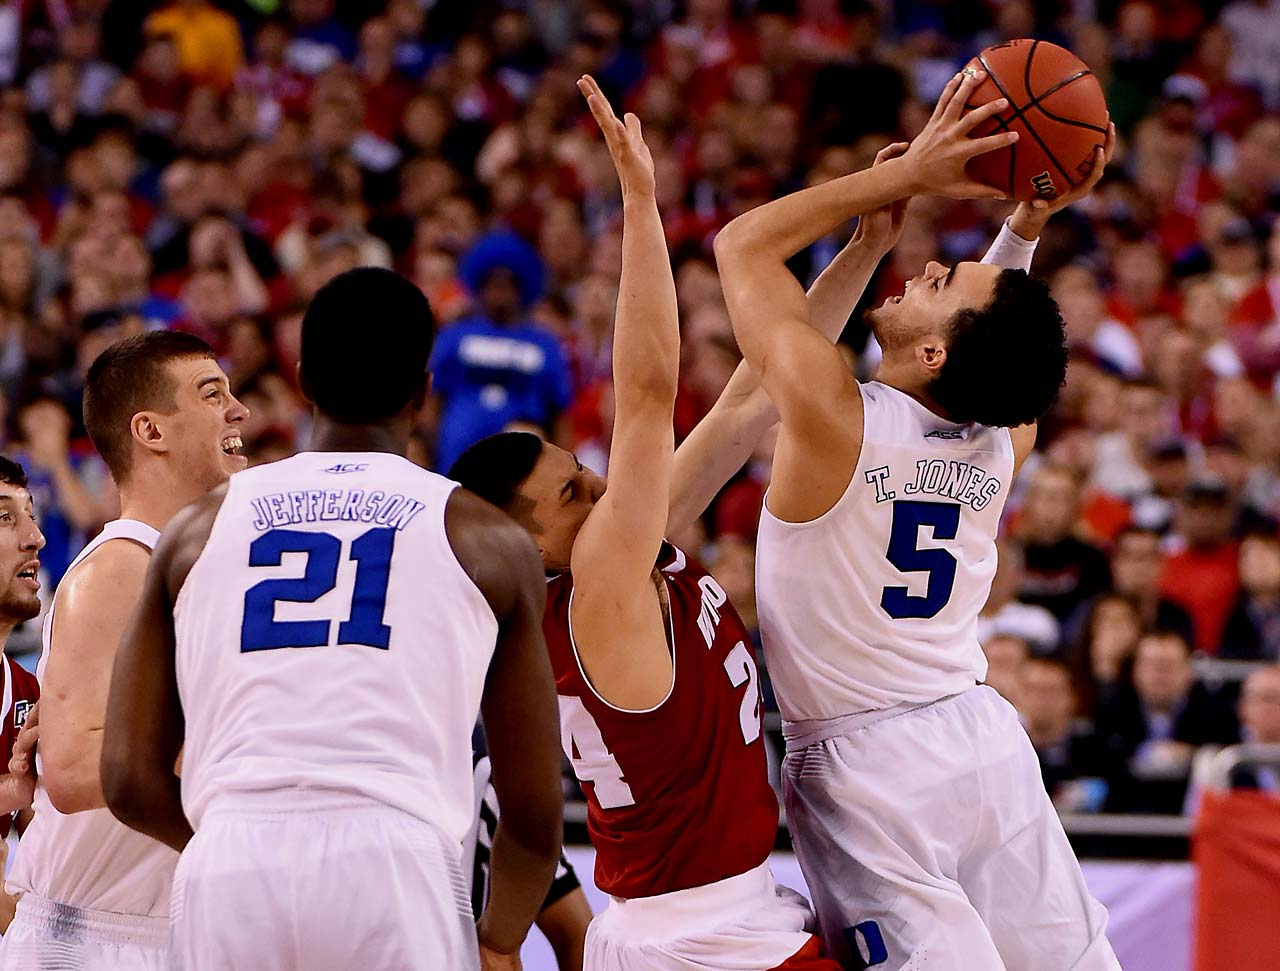 Duke point guard Tyus Jones hoists a tough lay-up over Wisconsin's Bronson Koenig. Jones was the Blue Devils' hero, scoring 23 points and drilling several clutch 3-pointers.